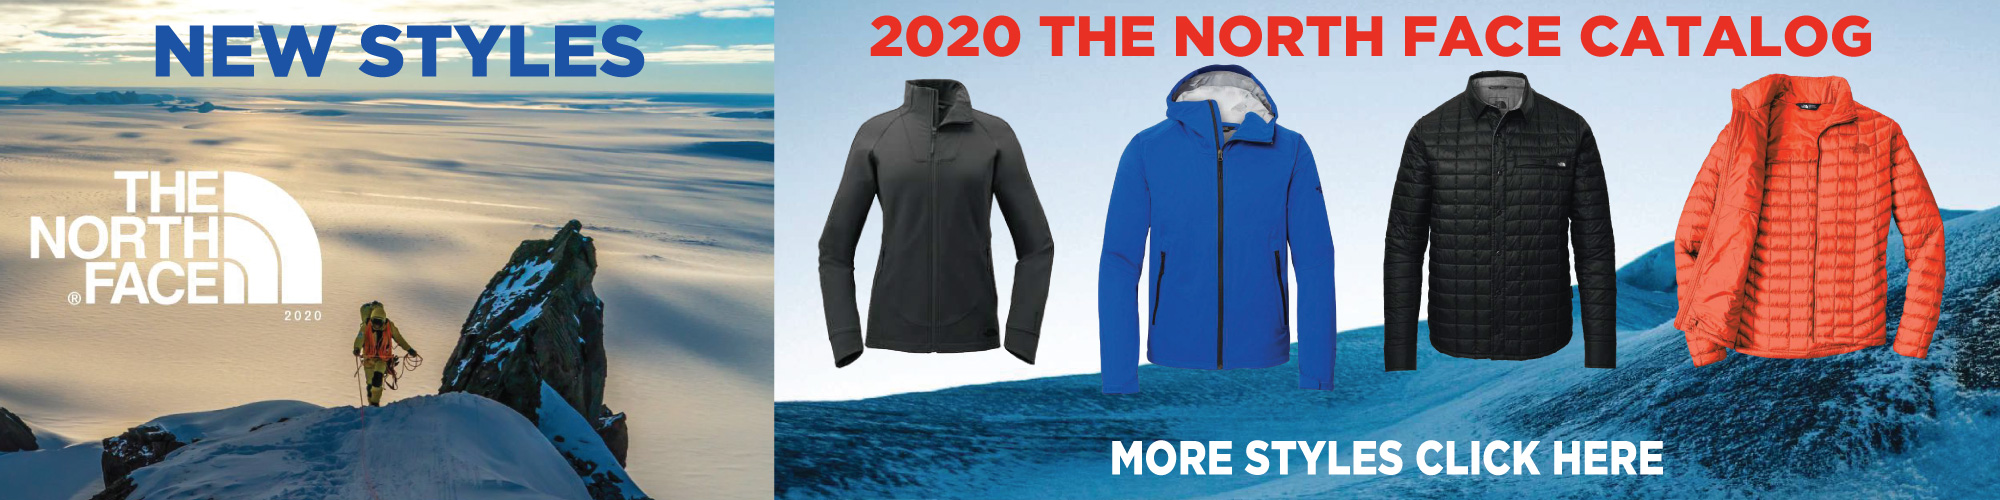 The-North-Face-2020